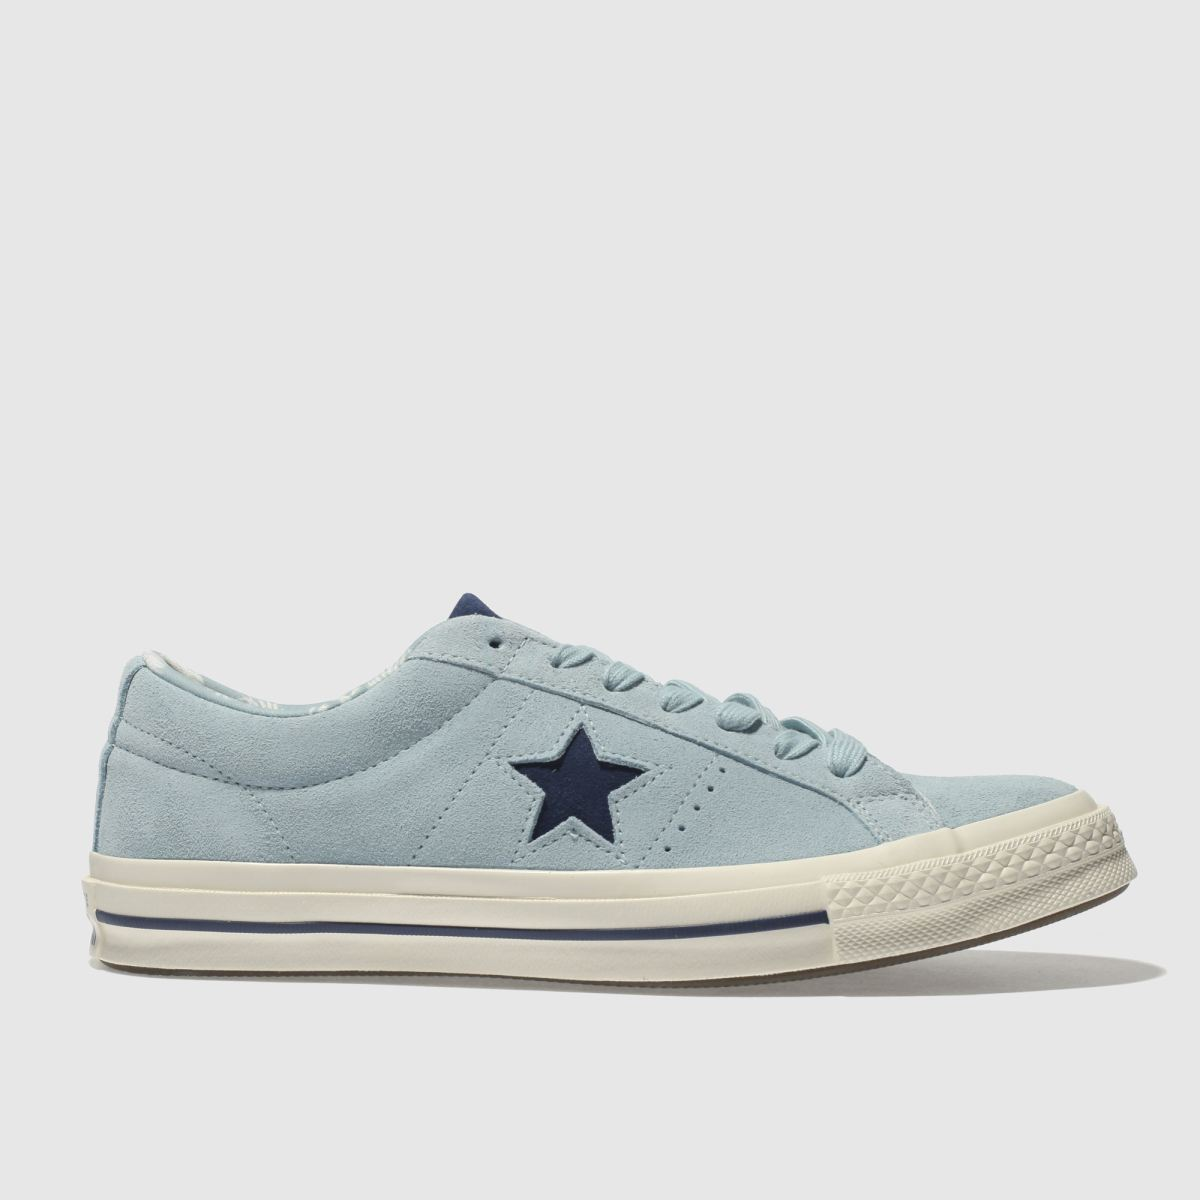 Converse Pale Blue One Star Ox Trainers